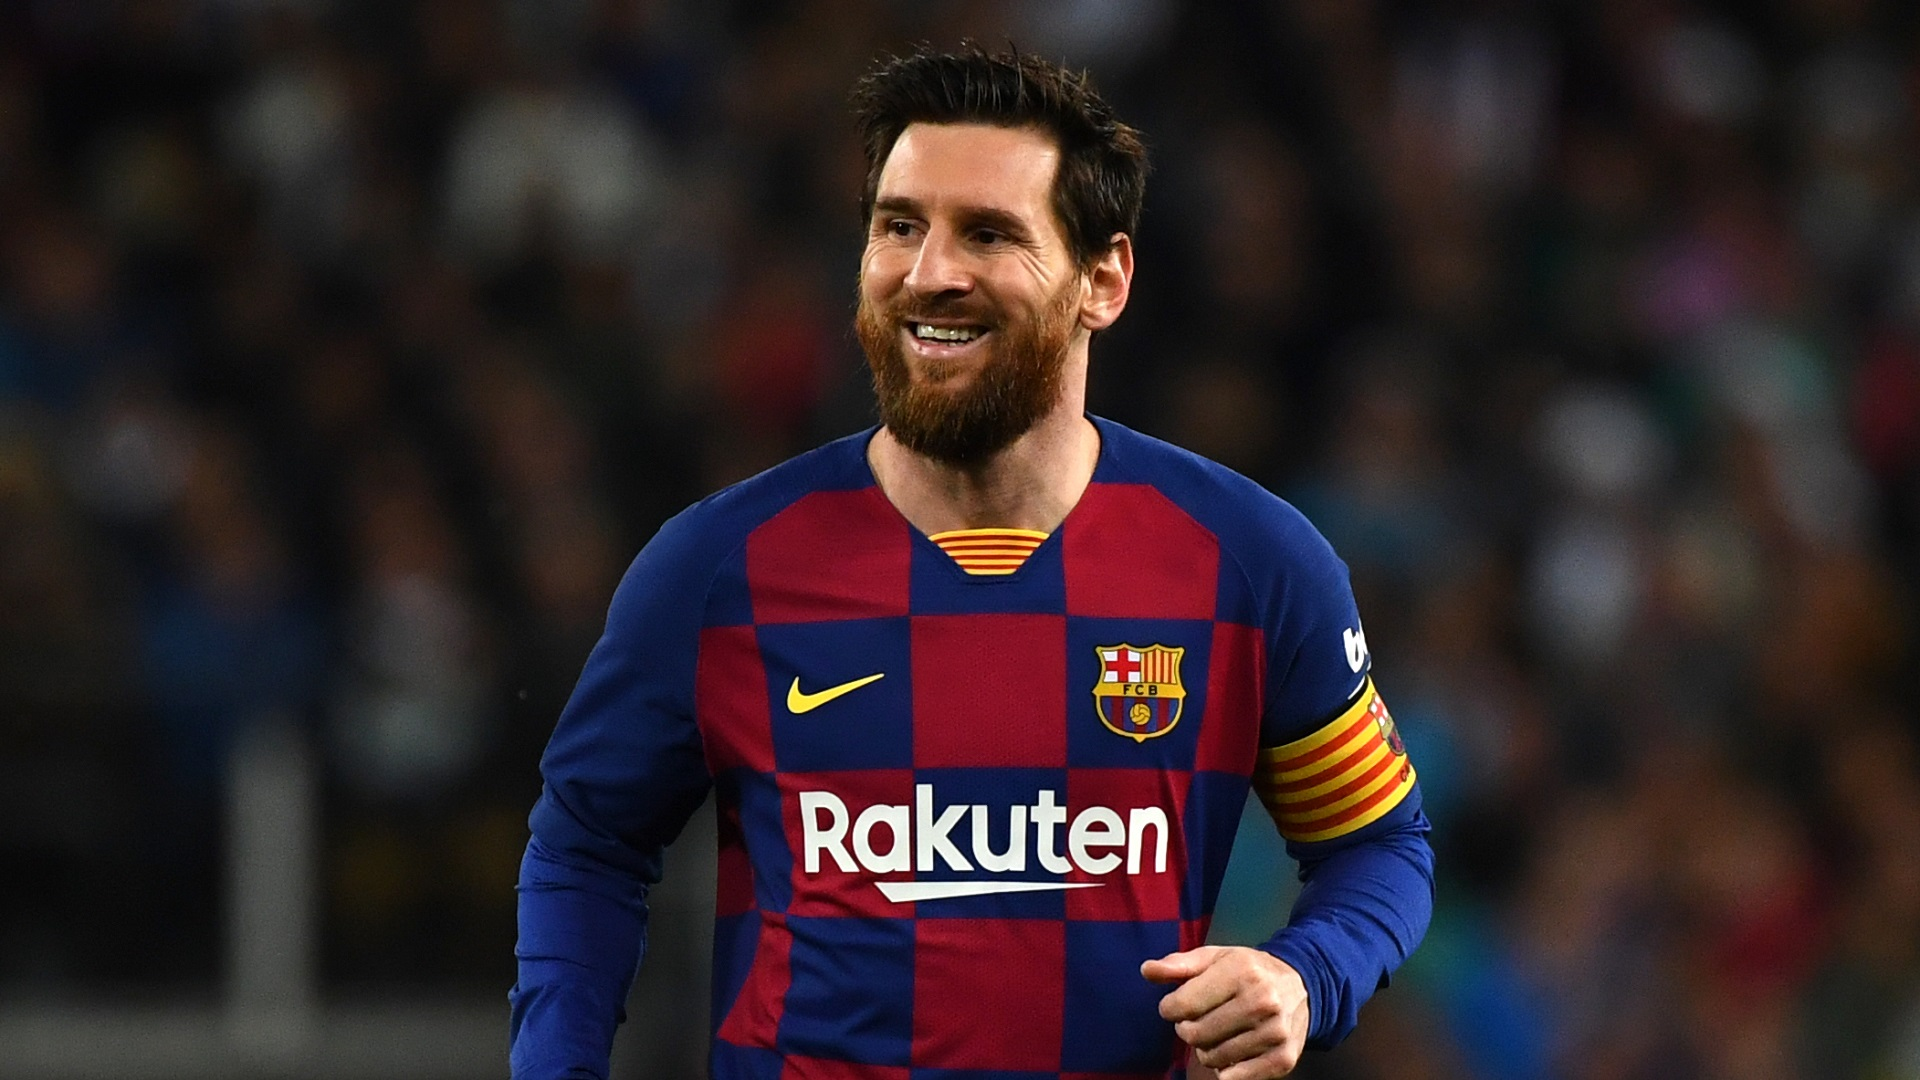 Messi is greater than Maradona - Cassano